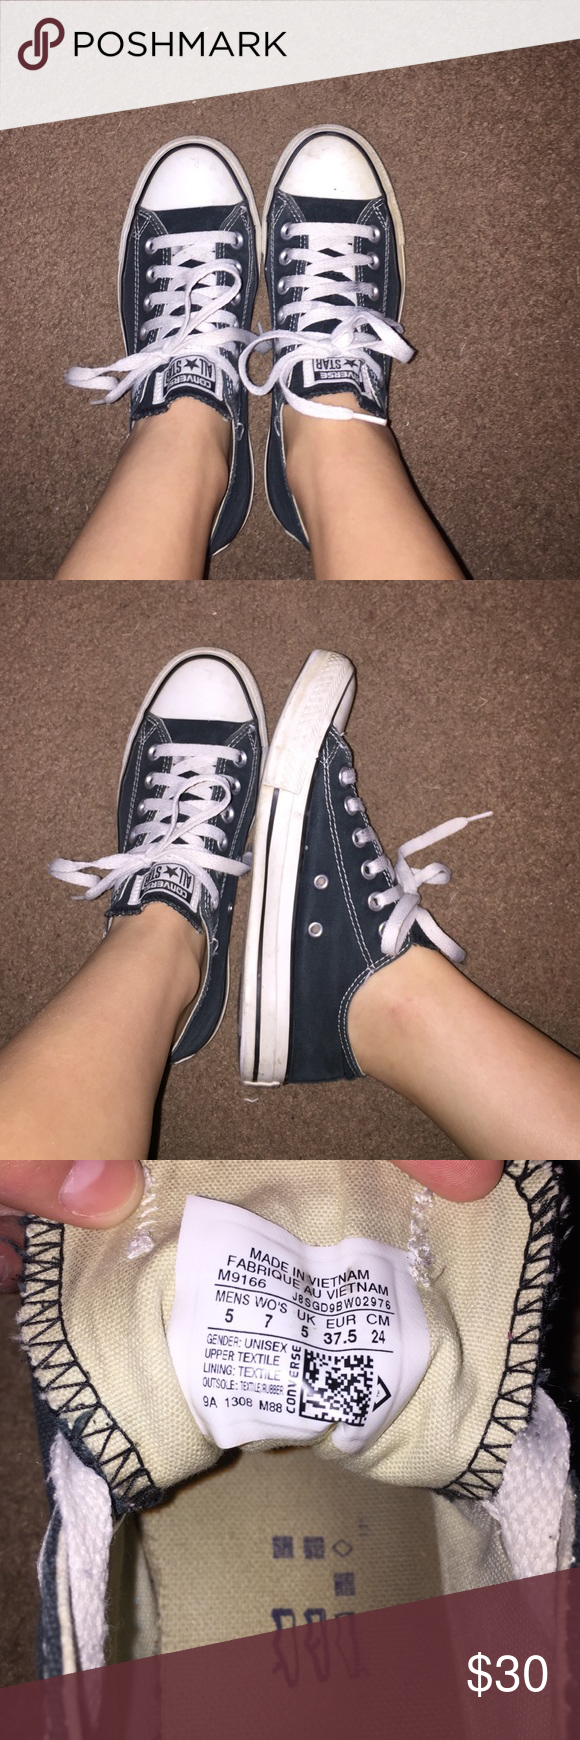 Black low top converse Bout a year old, haven't worn them in months, black, no rips or tears, good condition Converse Shoes Sneakers